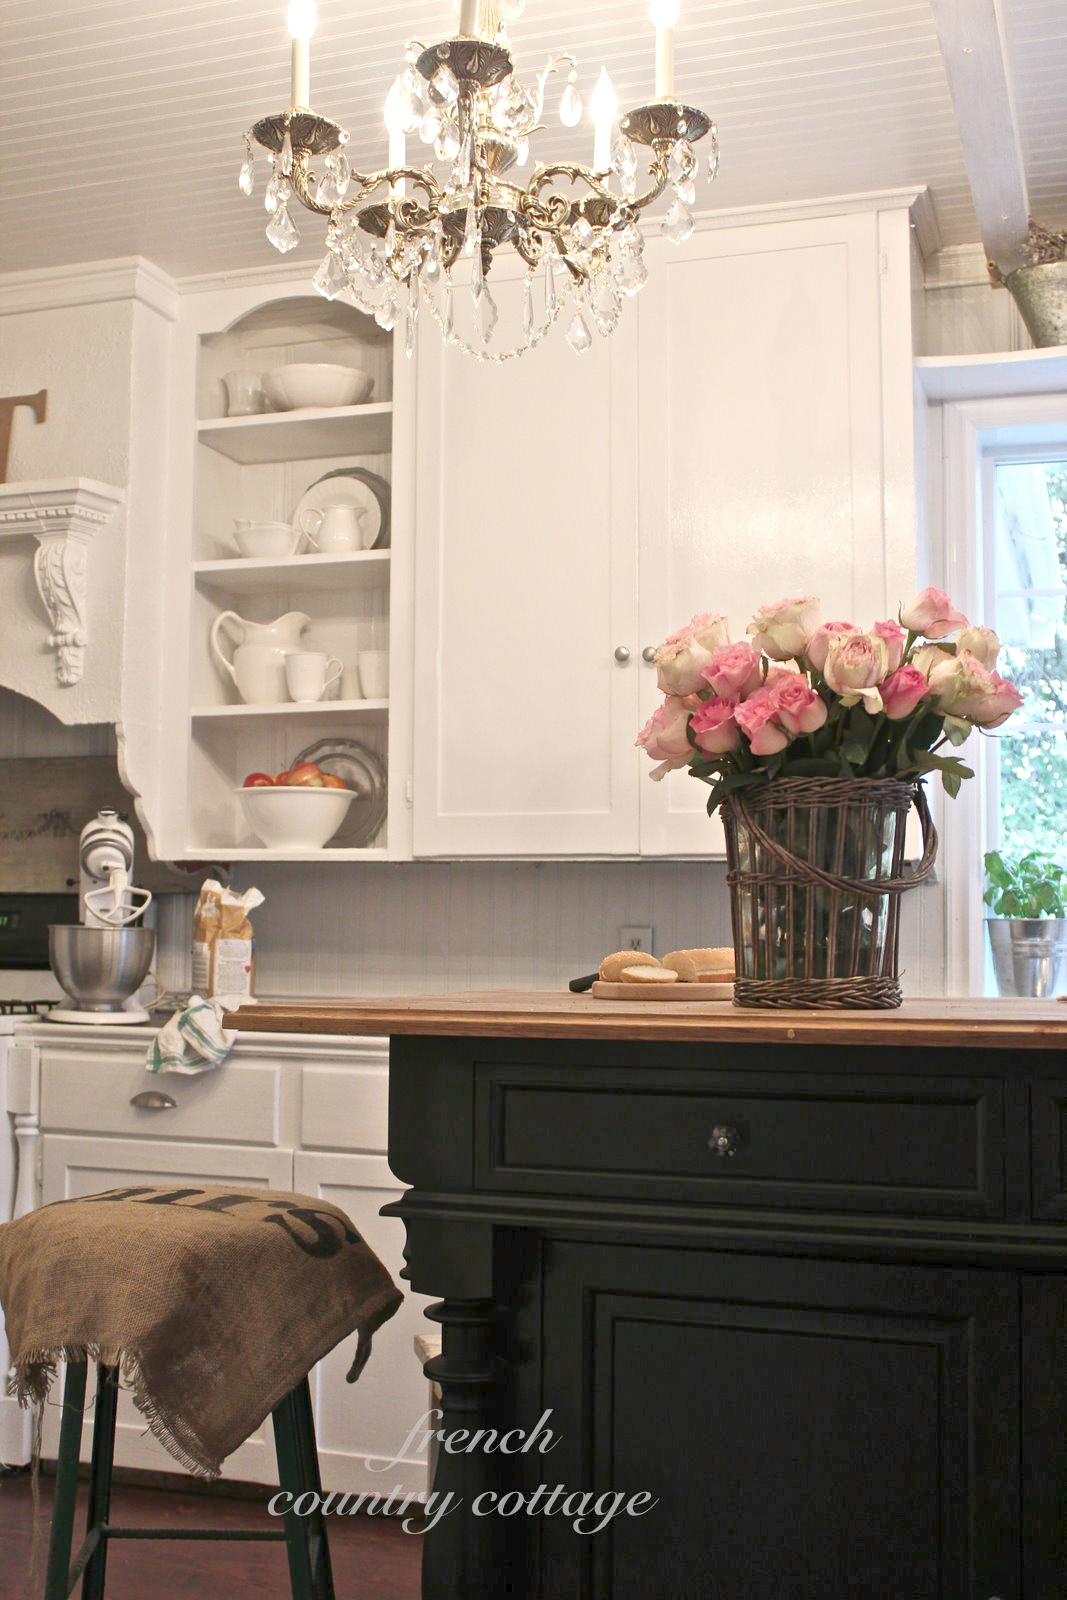 Creating Open Shelves In The Kitchen - French Country Cottage